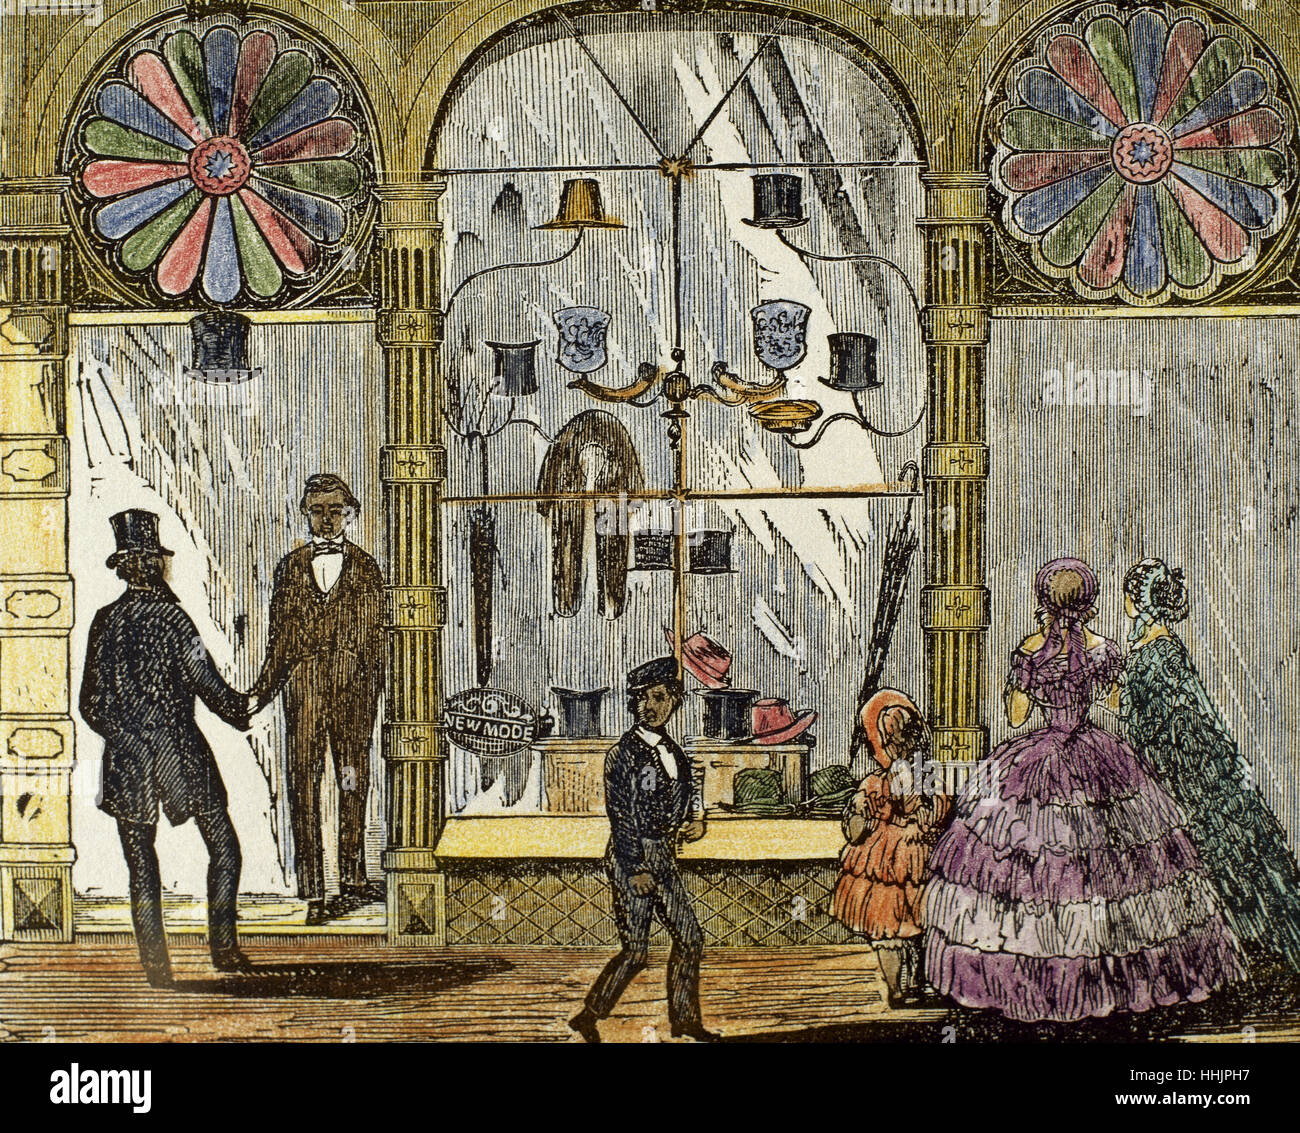 United States. Boston. Accessory shop for women and men in Washington Street. Shop window. Colored engraving, 1832. - Stock Image